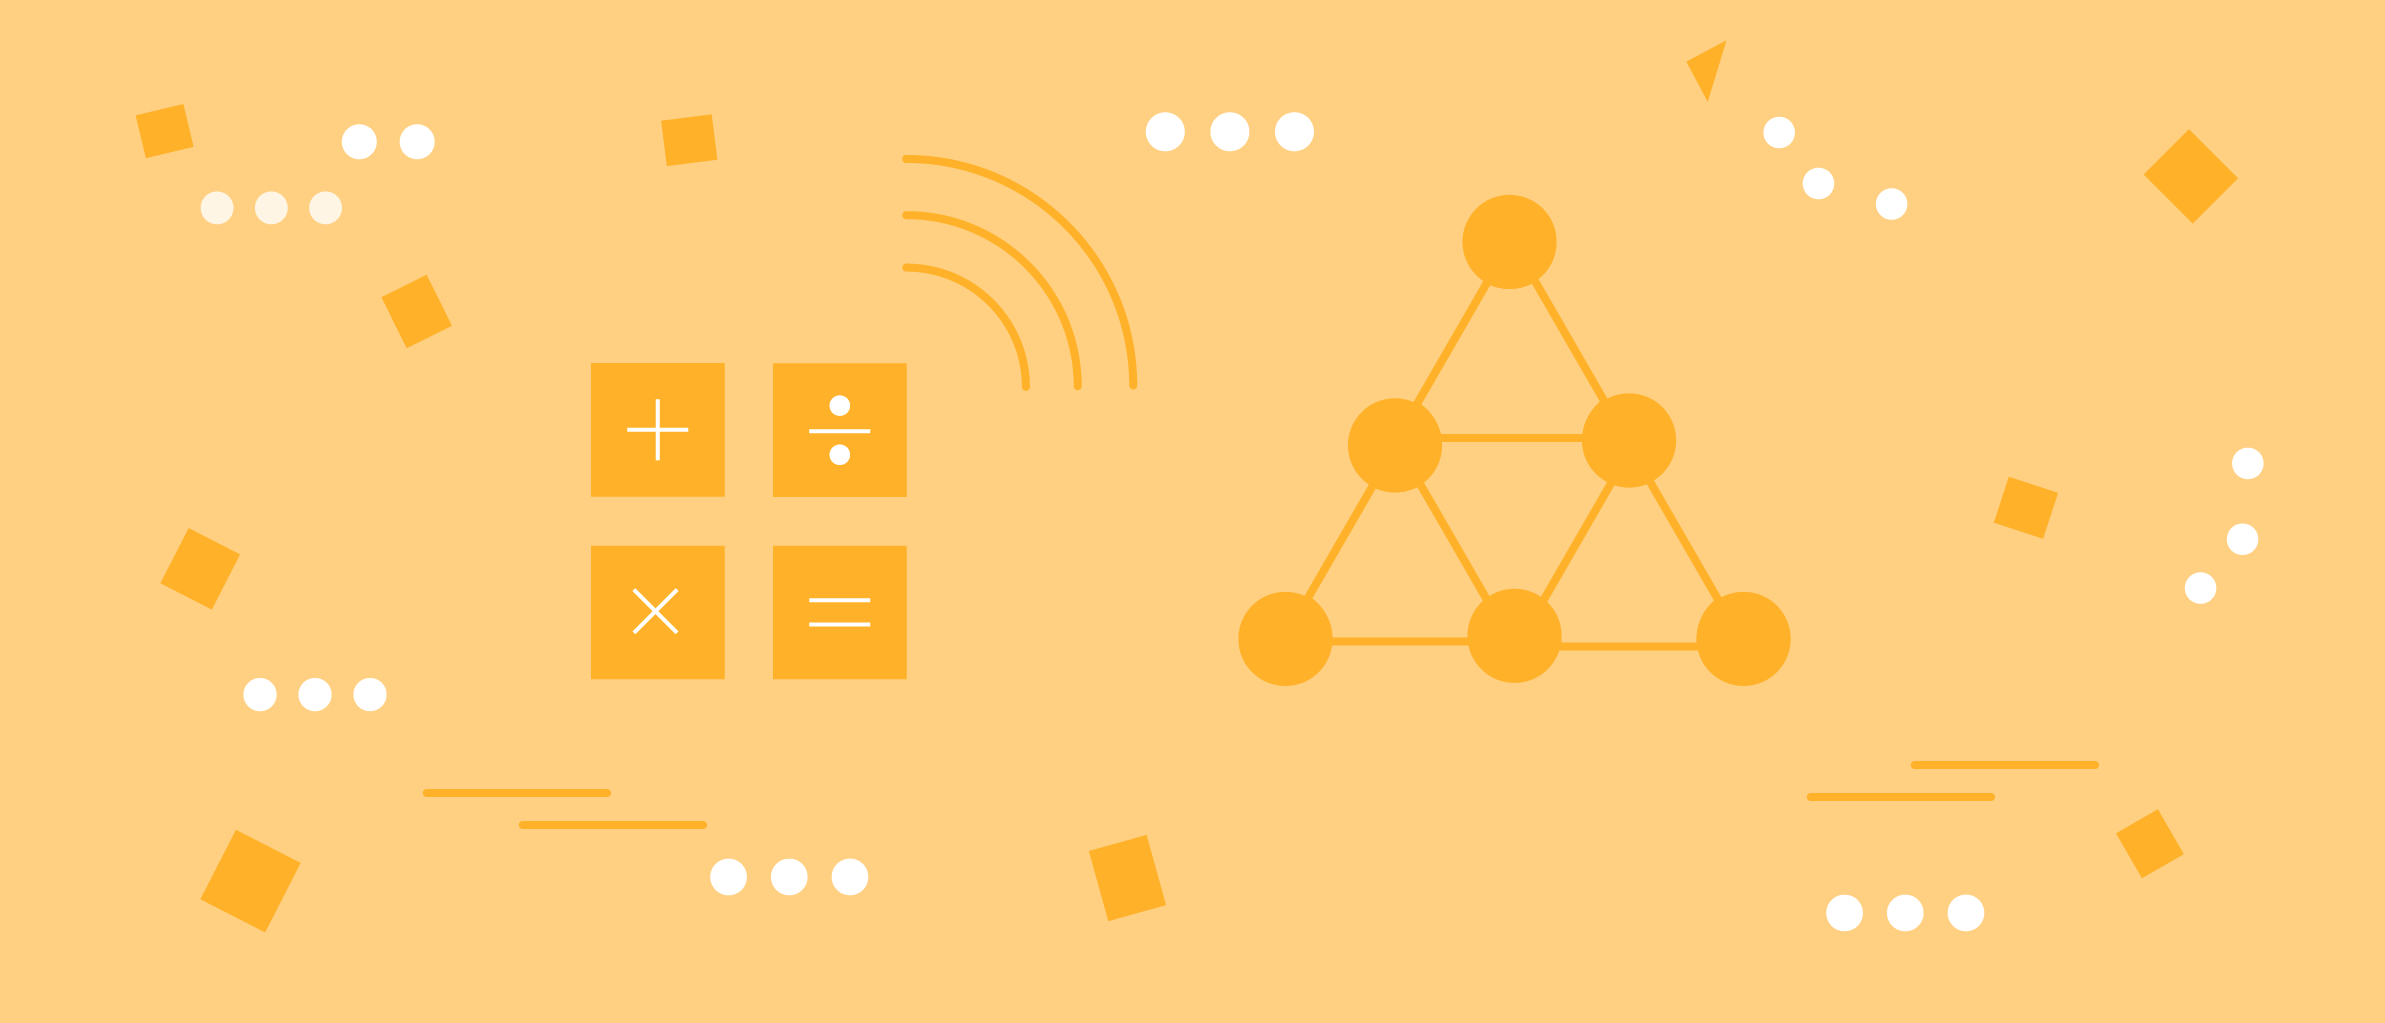 what-is-an-api-integration-for-non-technical-people blog post cover image